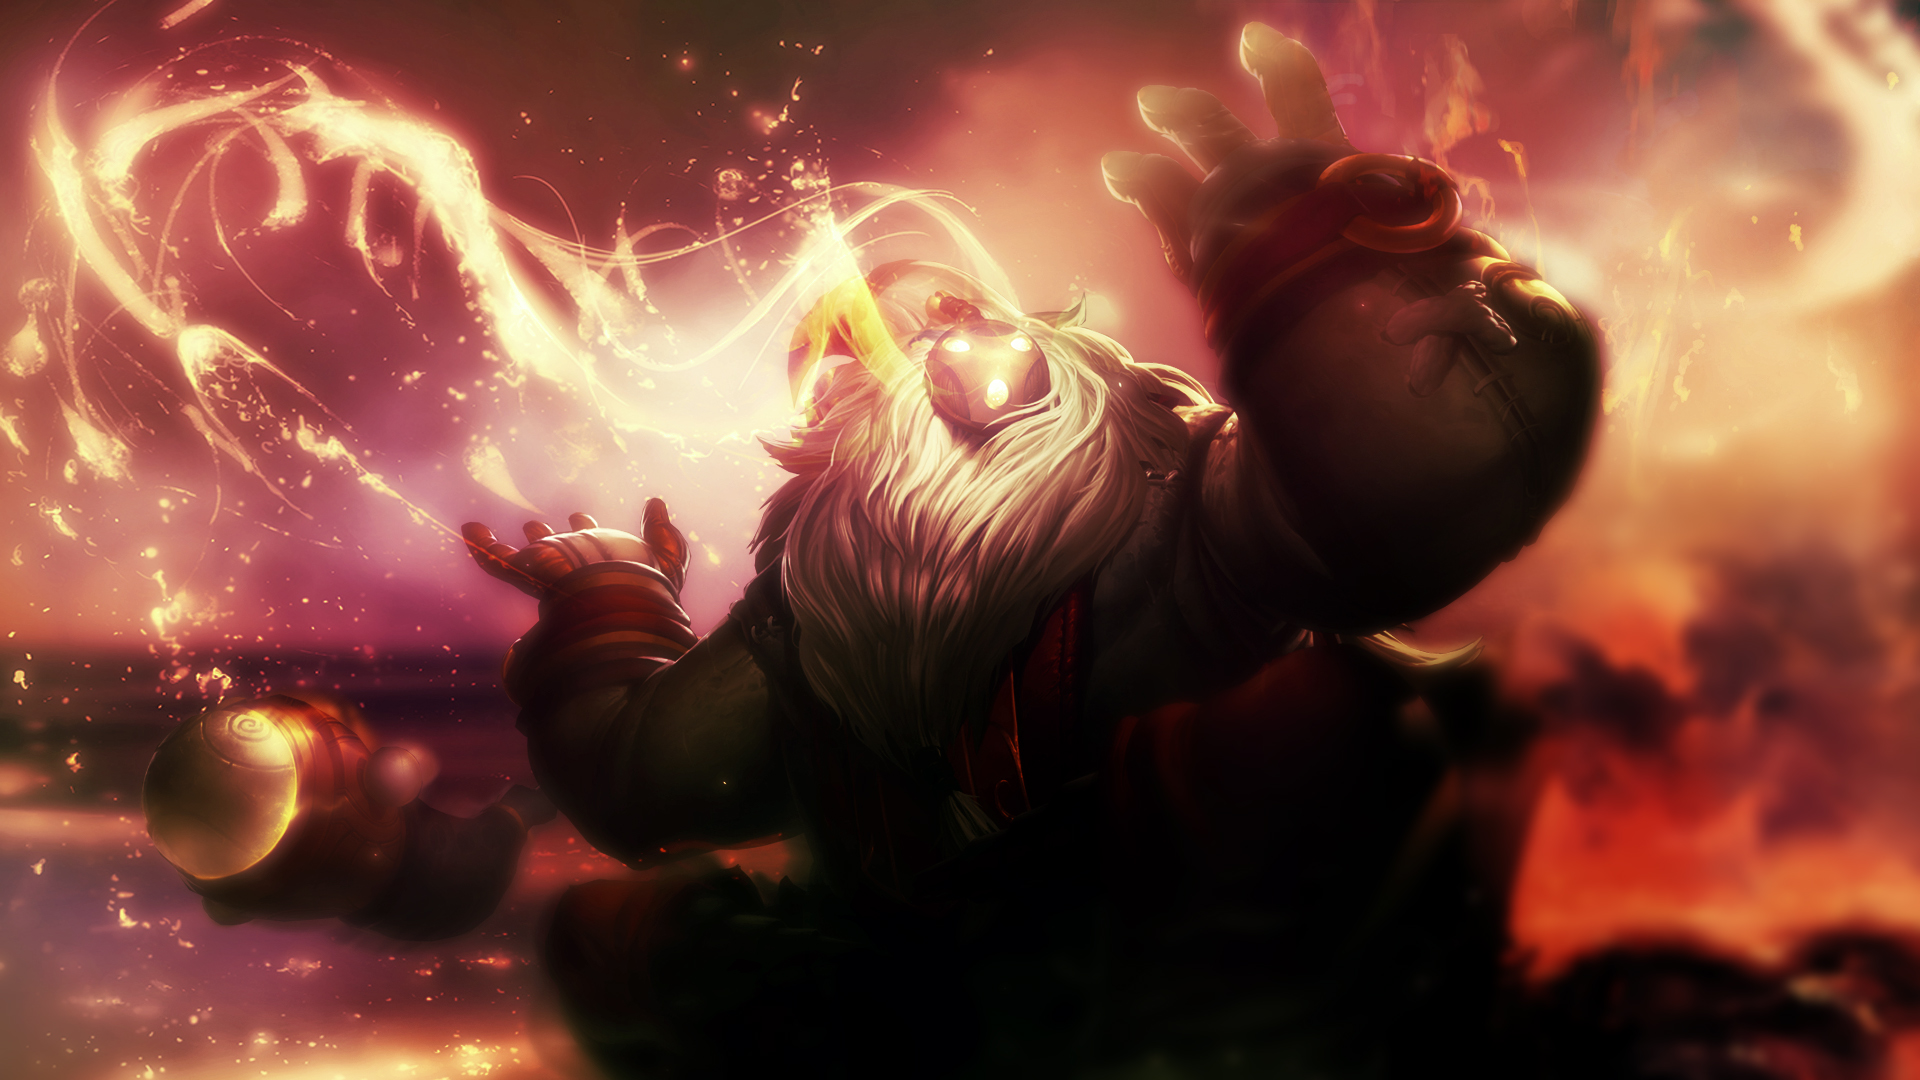 Bard Wallpapers, CK39 HD Wallpapers For Desktop And Mobile